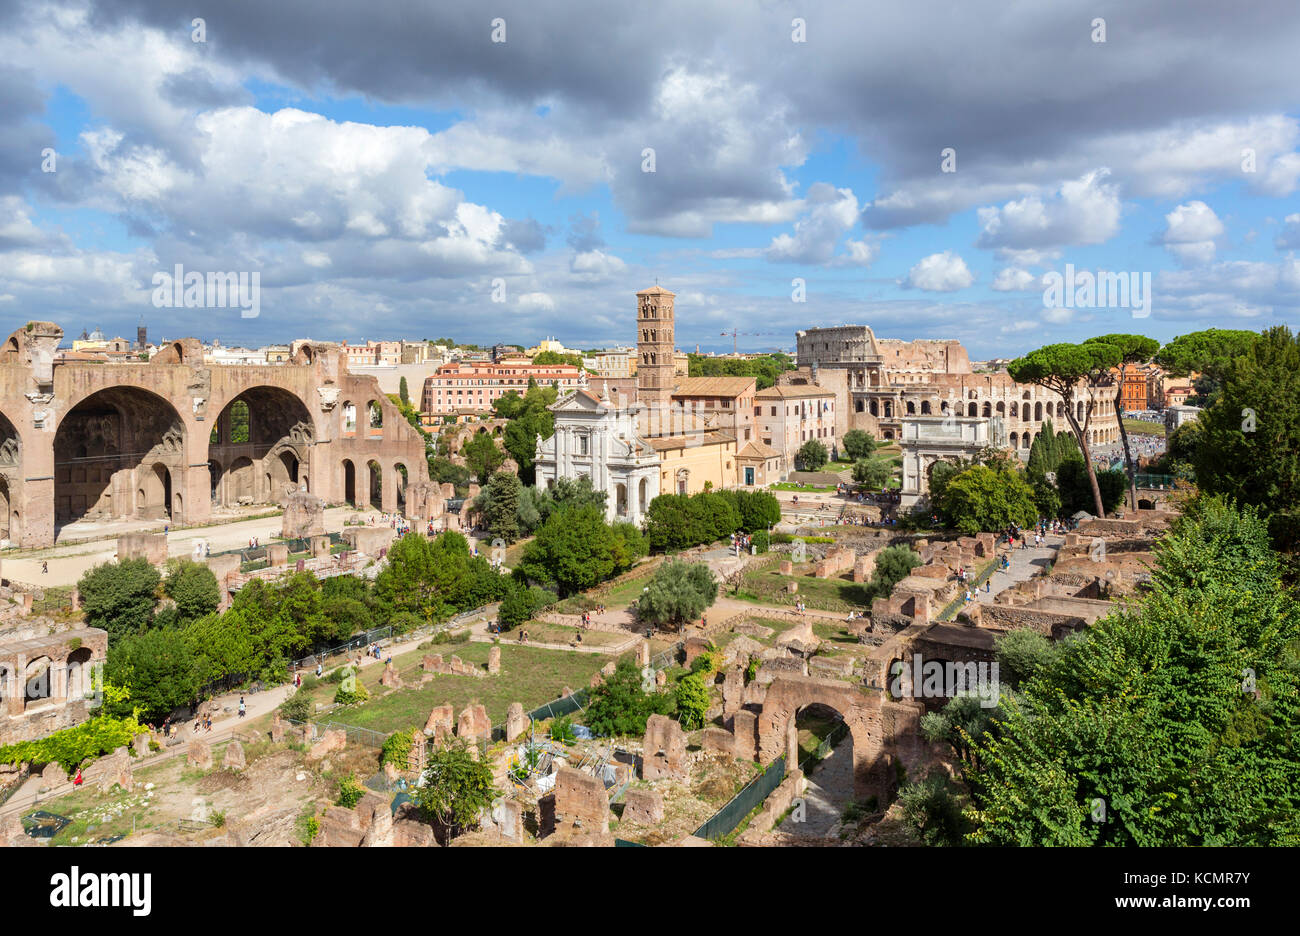 Rome, Forum. View from the Palatine Hill over the ancient ruins of the Roman Forum (Foro Romano) towards the Colosseum - Stock Image